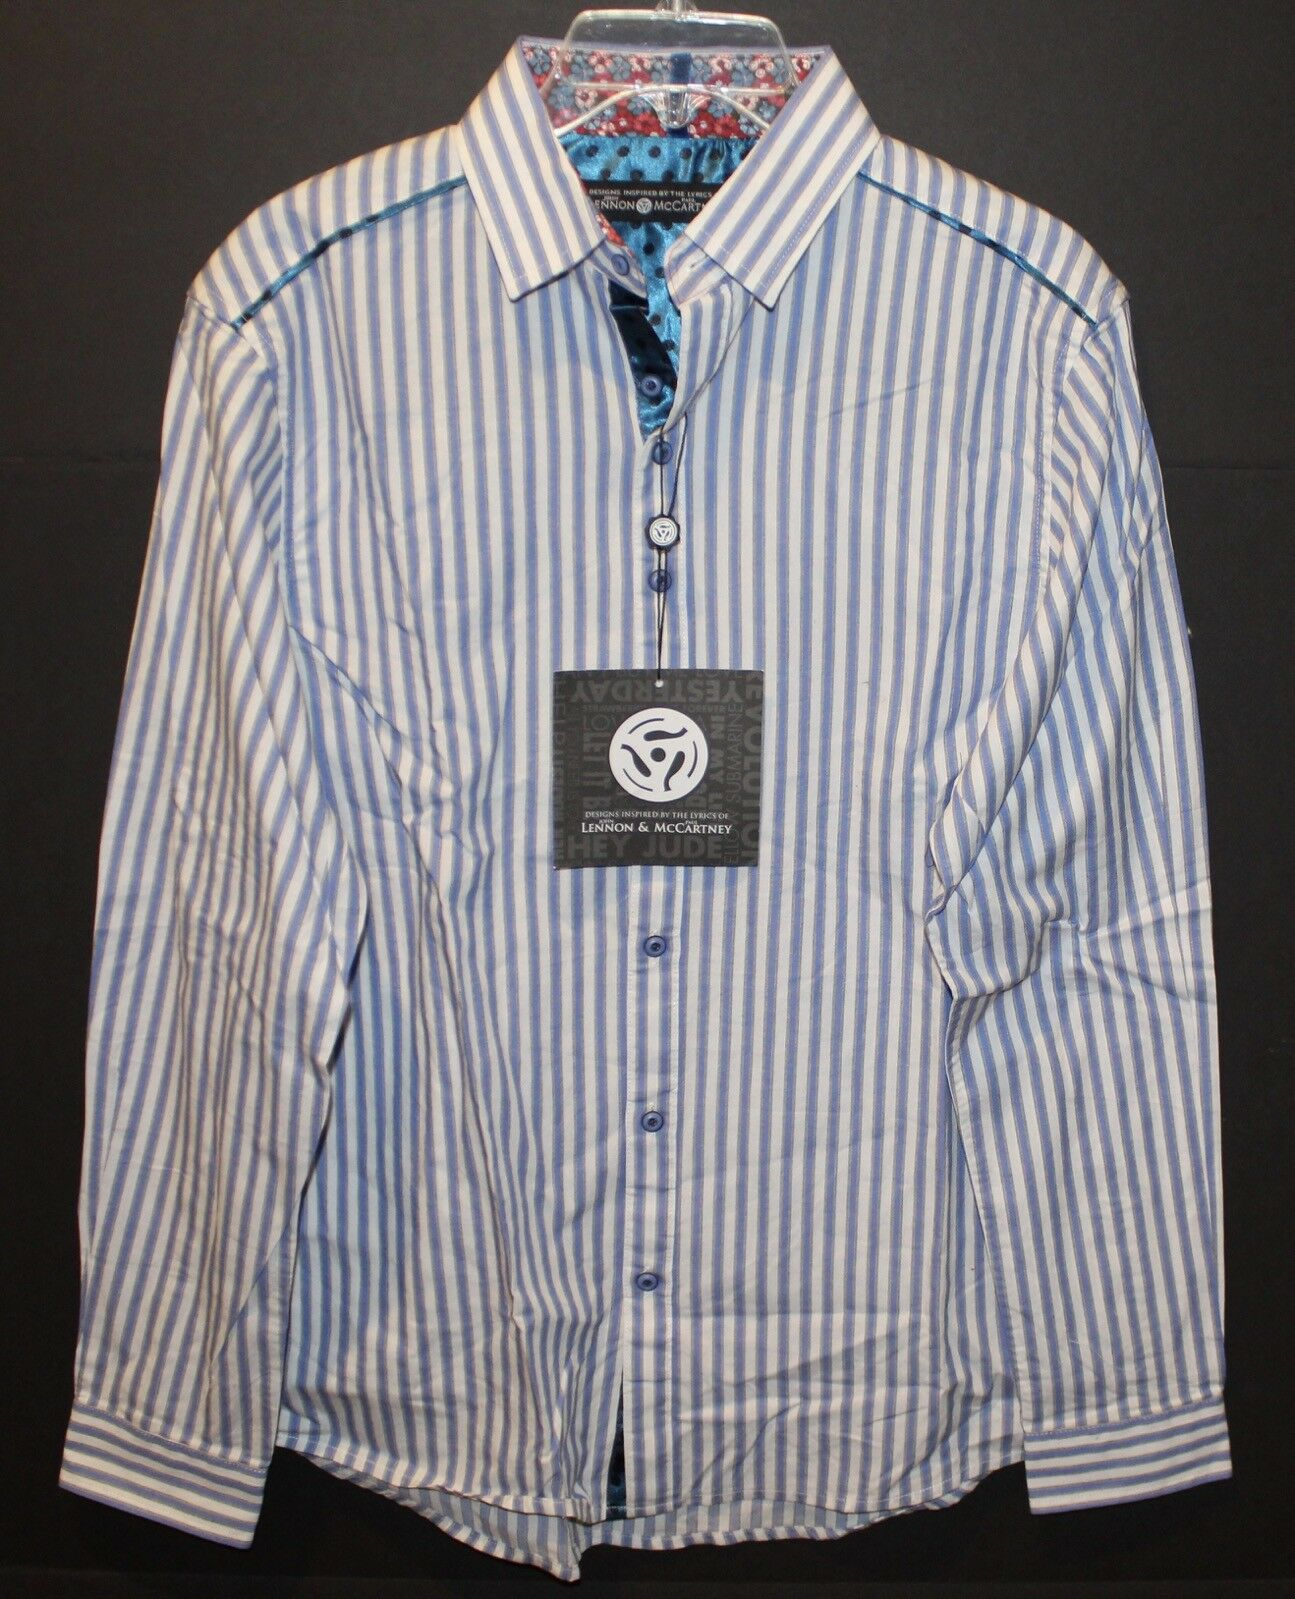 Lennon & McCartney Mens bluee Striped Cotton Button-Front Shirt NWT  Size S